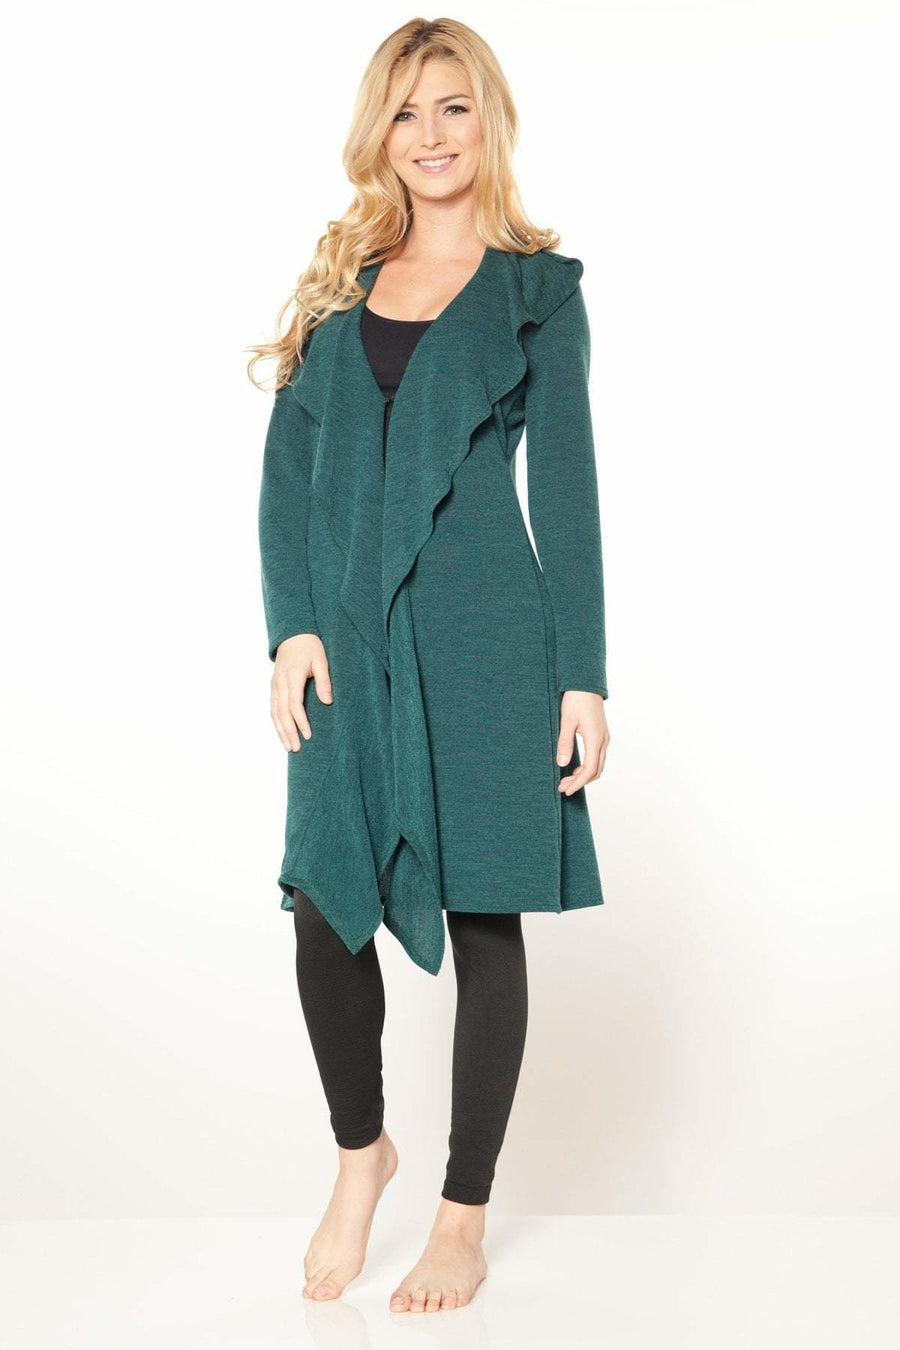 Ruffle Sweater Duster Jacket - Rhonda Shear